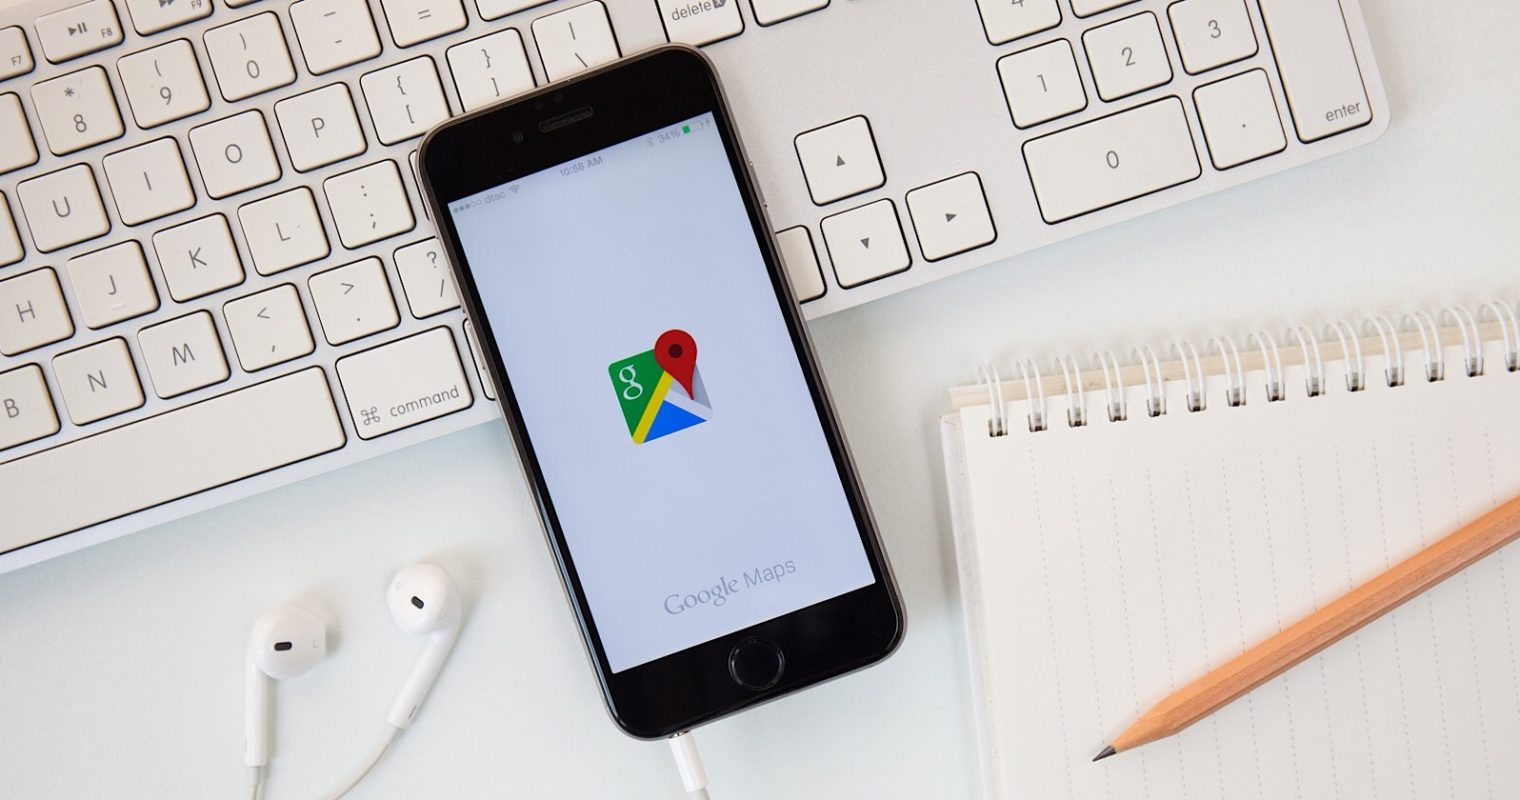 Google Lets Users Search Through Reviews of Business Listings